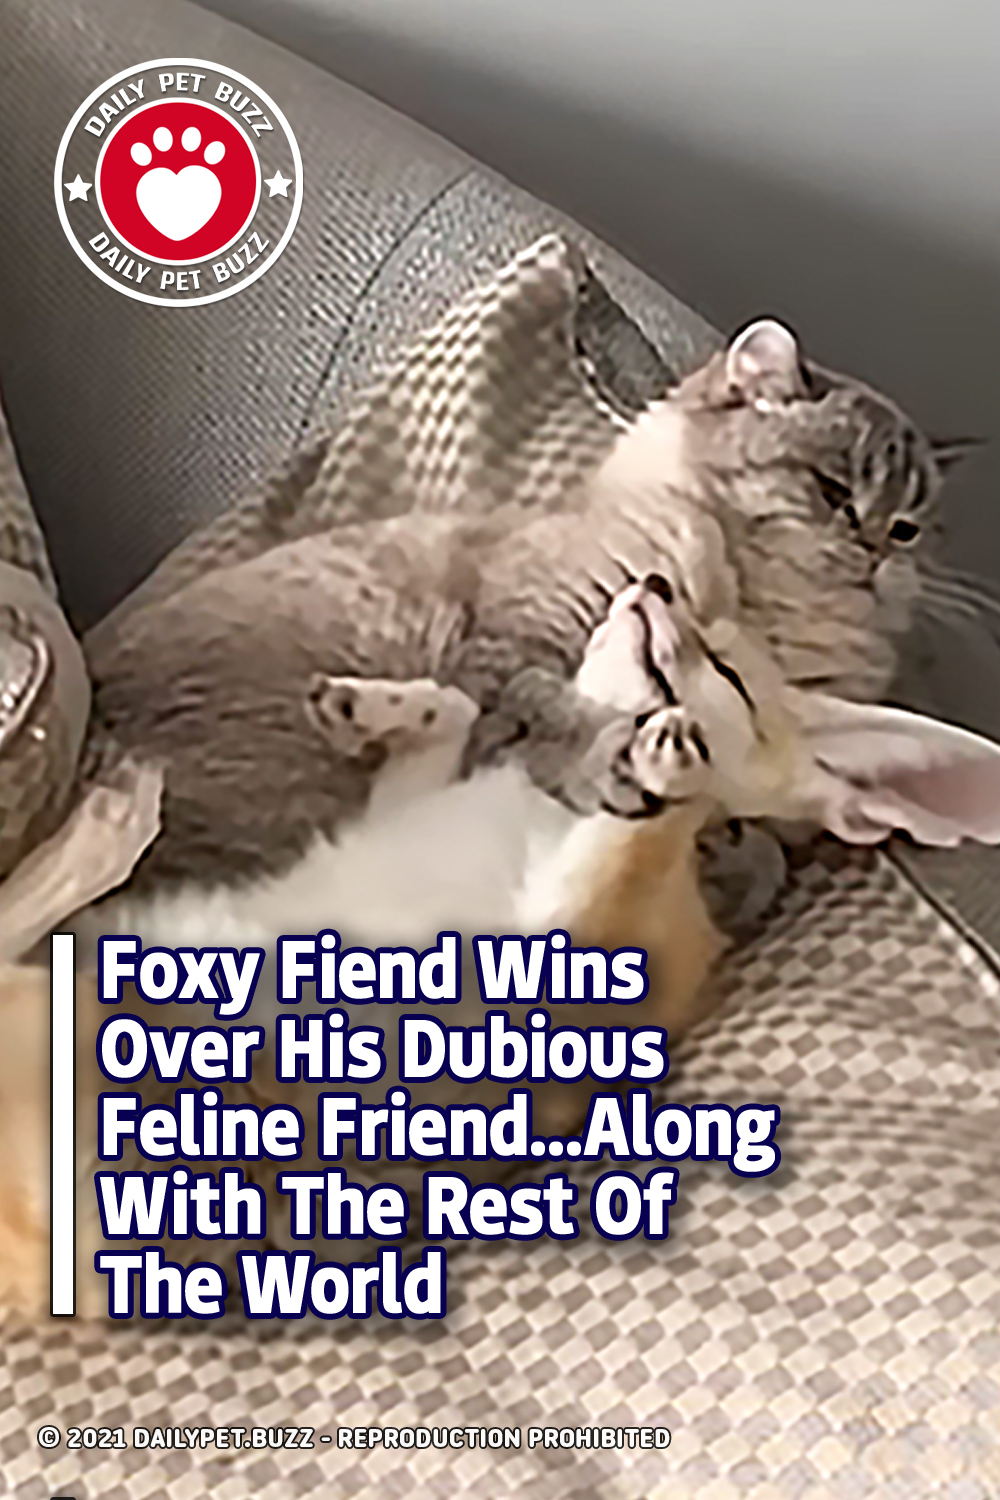 Foxy Fiend Wins Over His Dubious Feline Friend...Along With The Rest Of The World